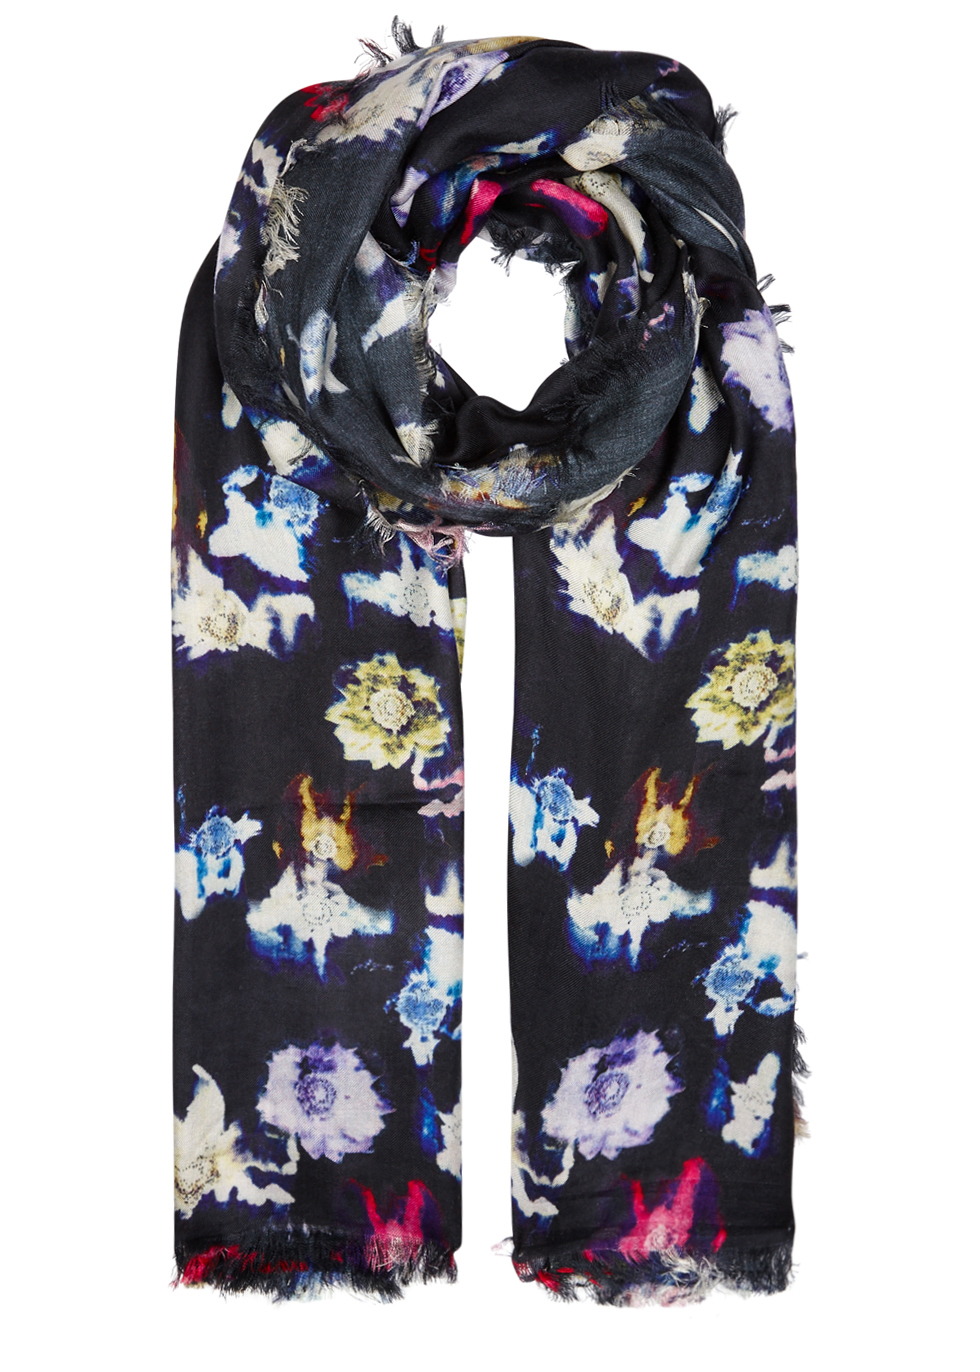 Renee Navy Floral Print Silk Scarf - predominant colour: navy; occasions: casual; type of pattern: heavy; style: regular; size: standard; material: fabric; pattern: florals; multicoloured: multicoloured; season: a/w 2016